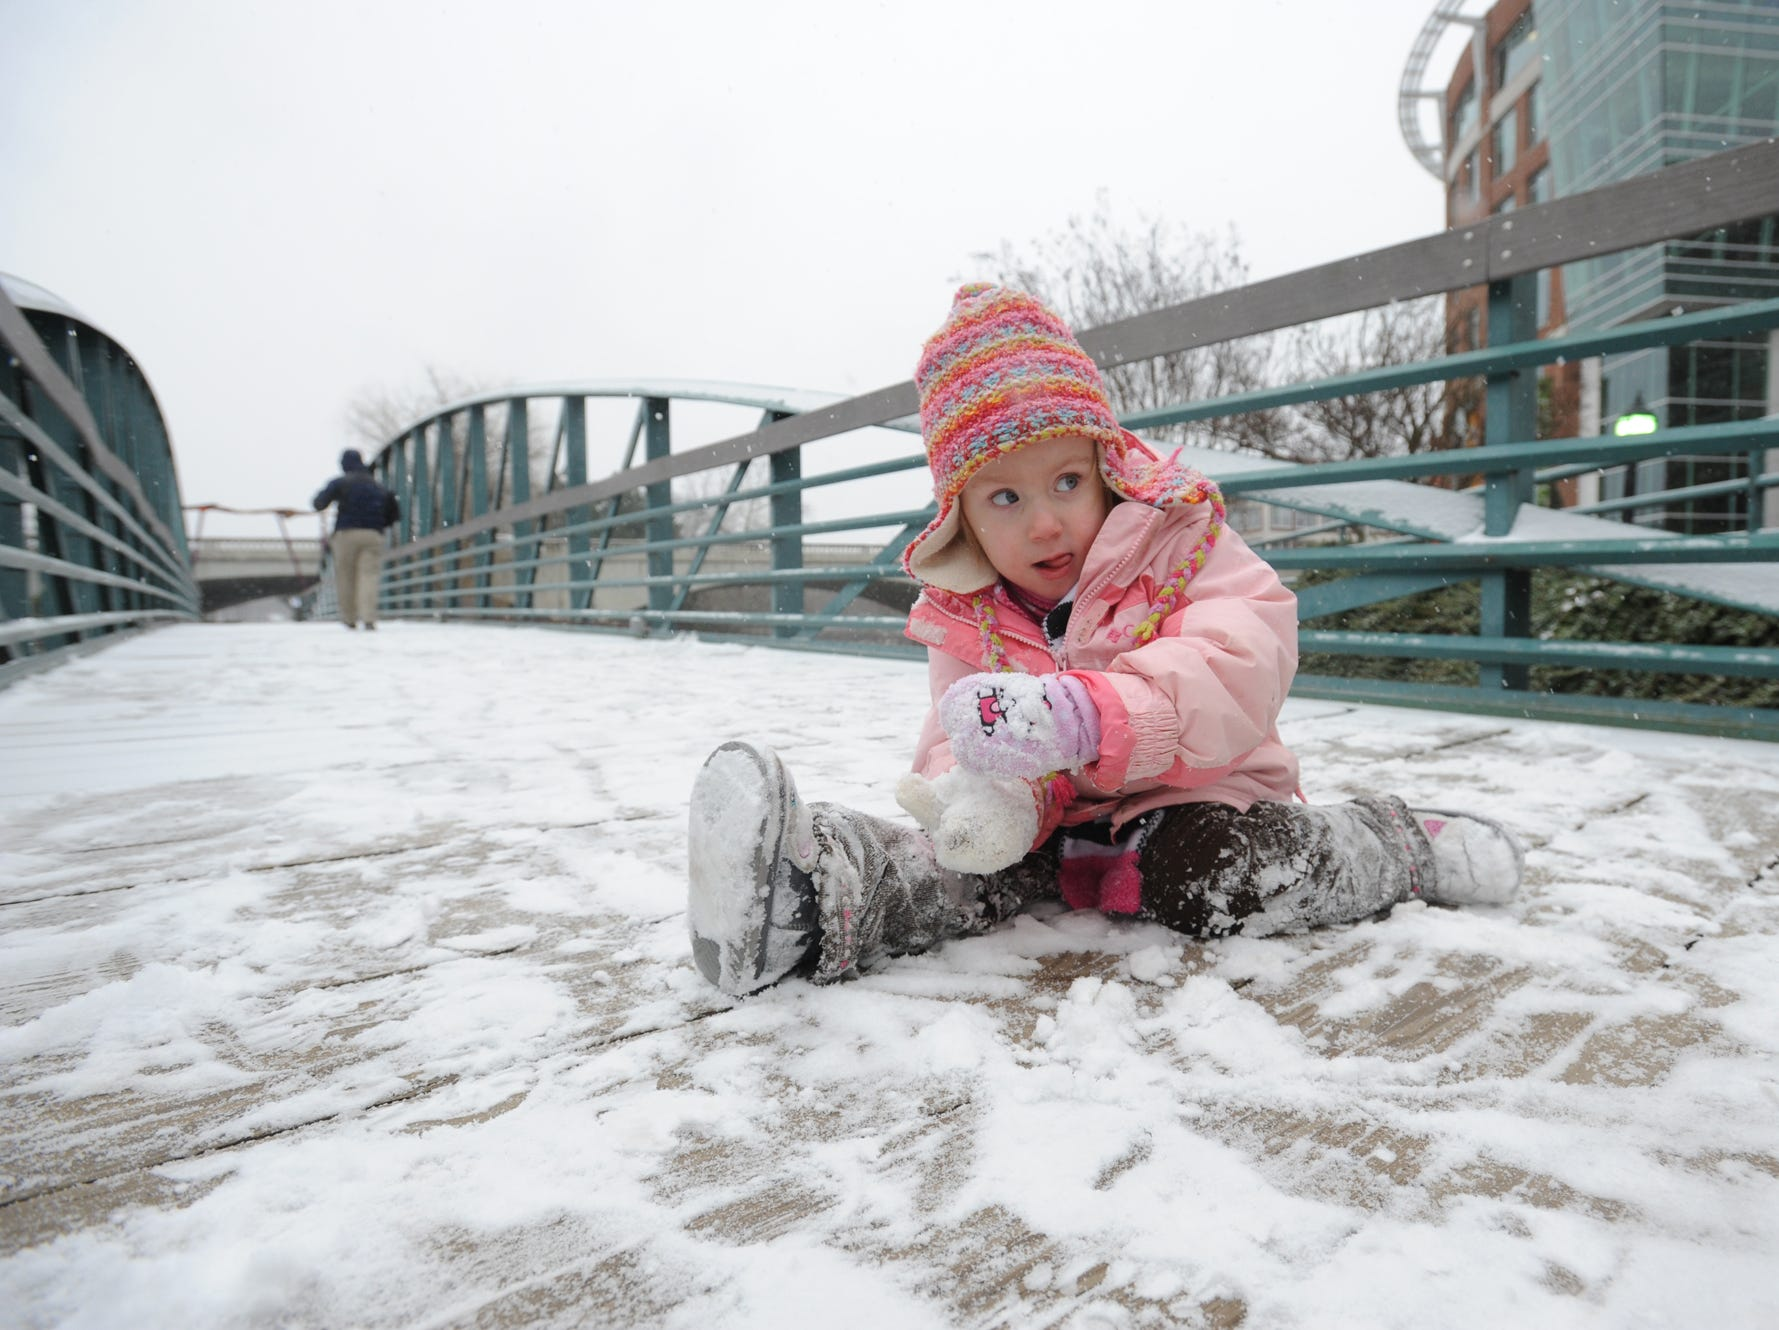 Lucy Baker looks in the direction of her family as she makes a snowball while playing in downtown Greenville on Tuesday, January 28, 2014.